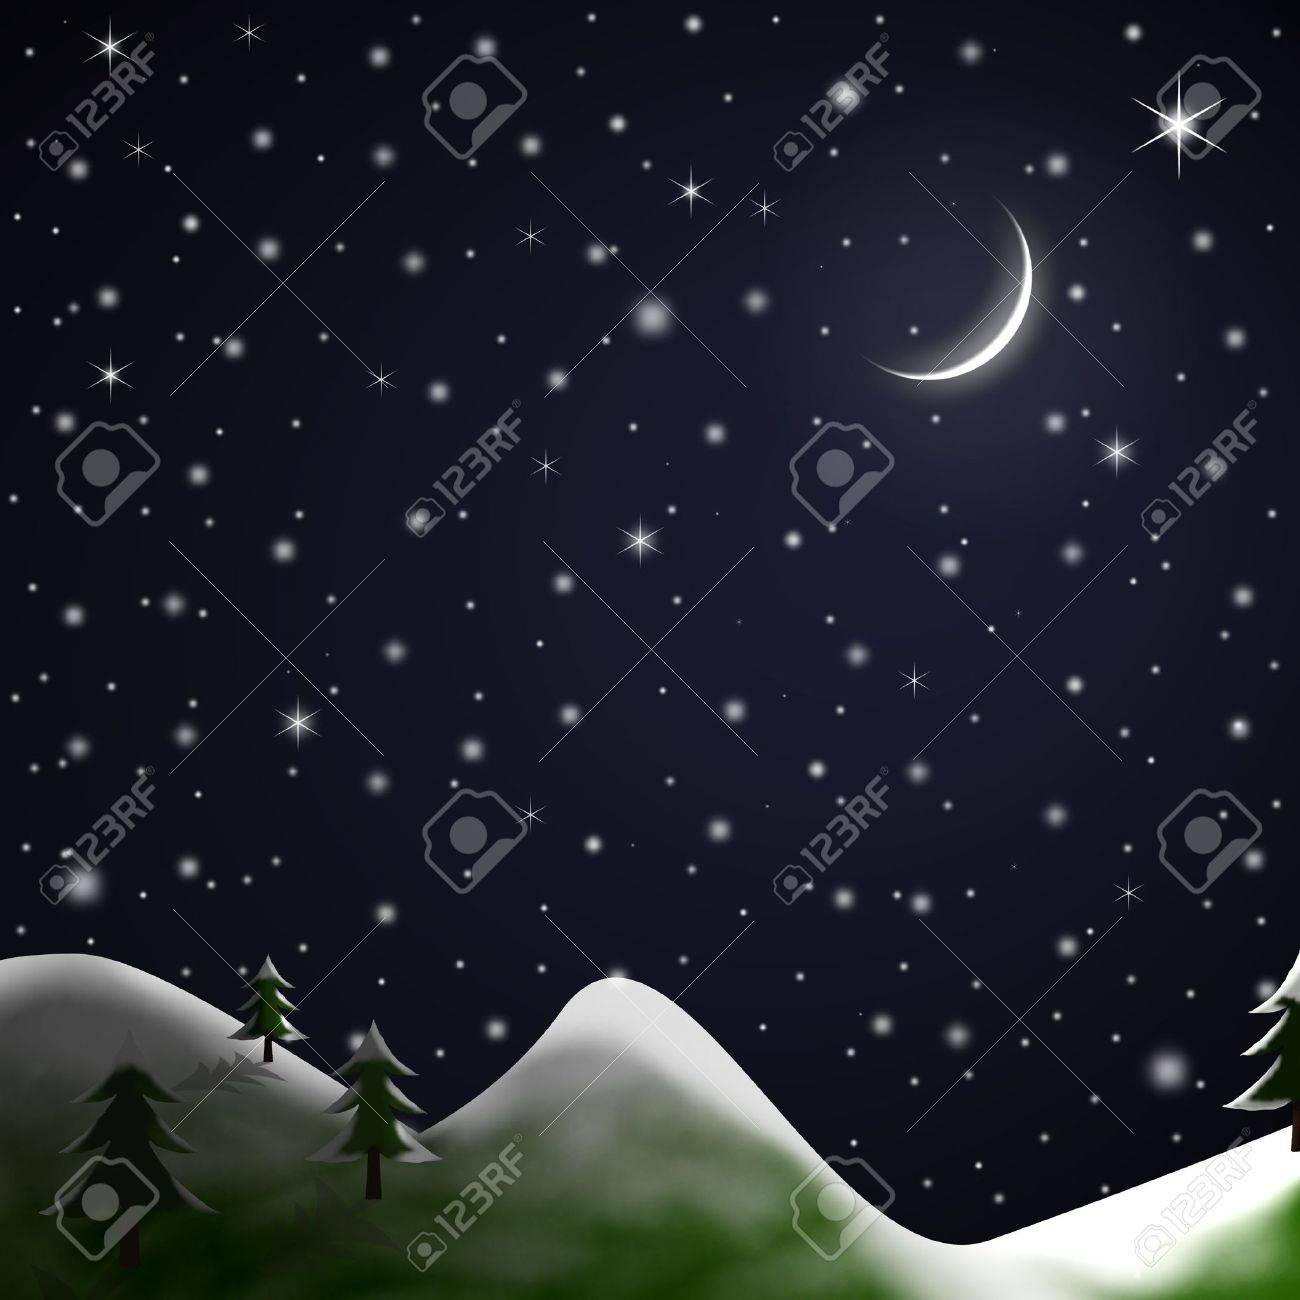 Illustration of a star-lit Winter night with snow topped grassy hills, fir trees, crescent moon and falling snow. Stock Photo - 5899866